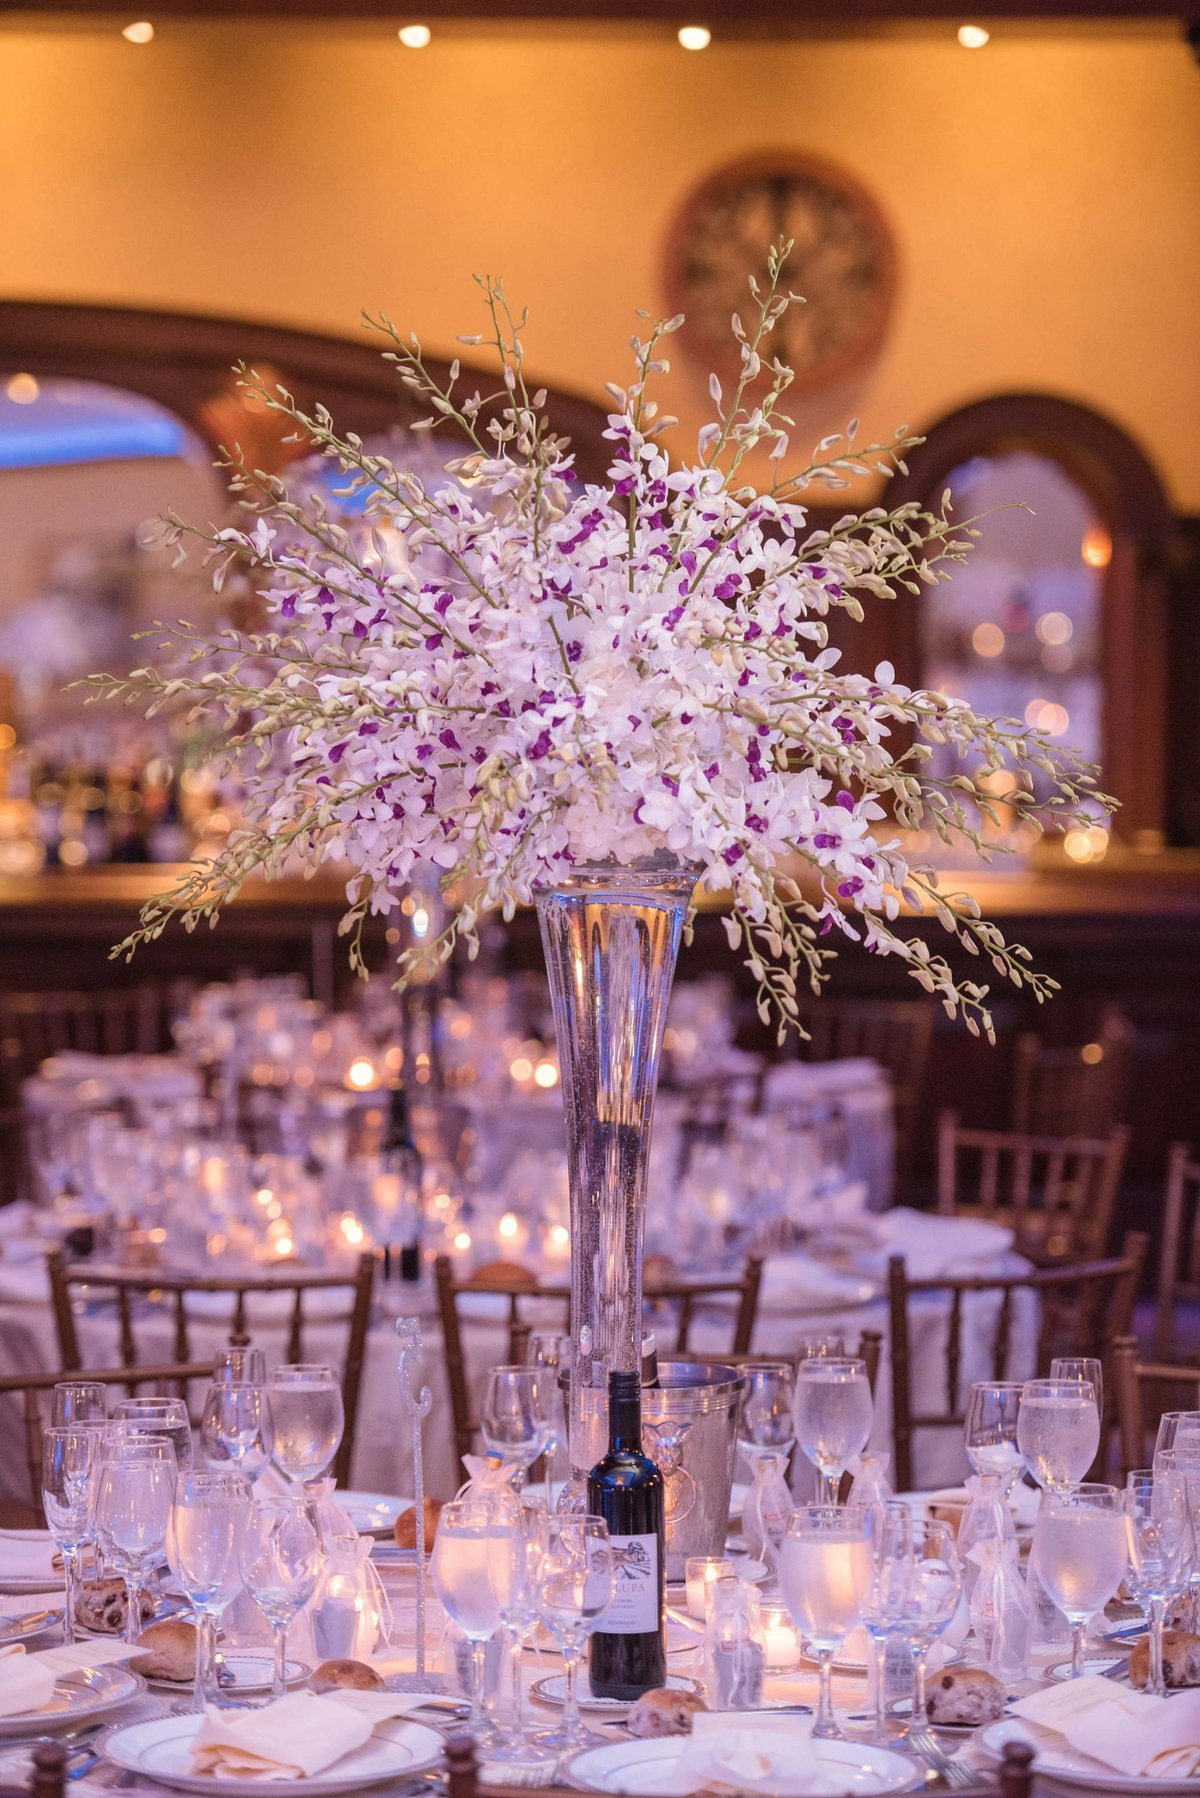 Larkfield Manor wedding decor